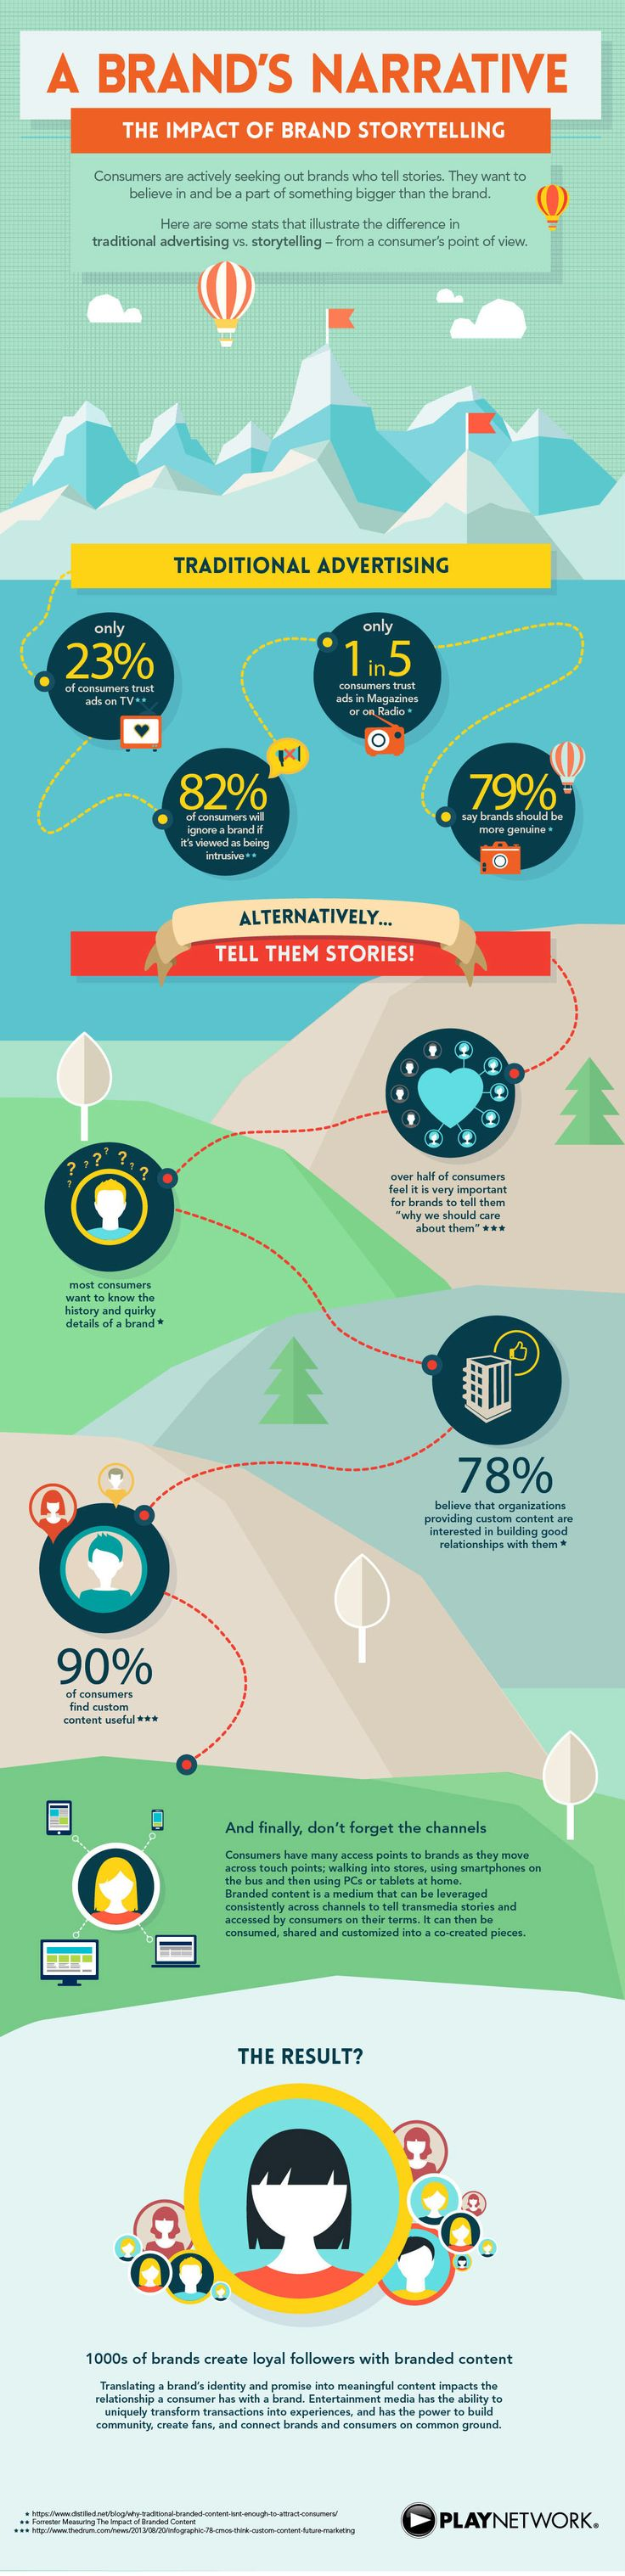 In the pursuit of deeper connections with their desired audience, brands leave behind traditional advertising and find that providing compelling branded content is what really moves consumers to be a part of their story – their brand story. This infographic from PlayNetwork illustrates the importance of brand storytelling, from the consumer's viewpoint.